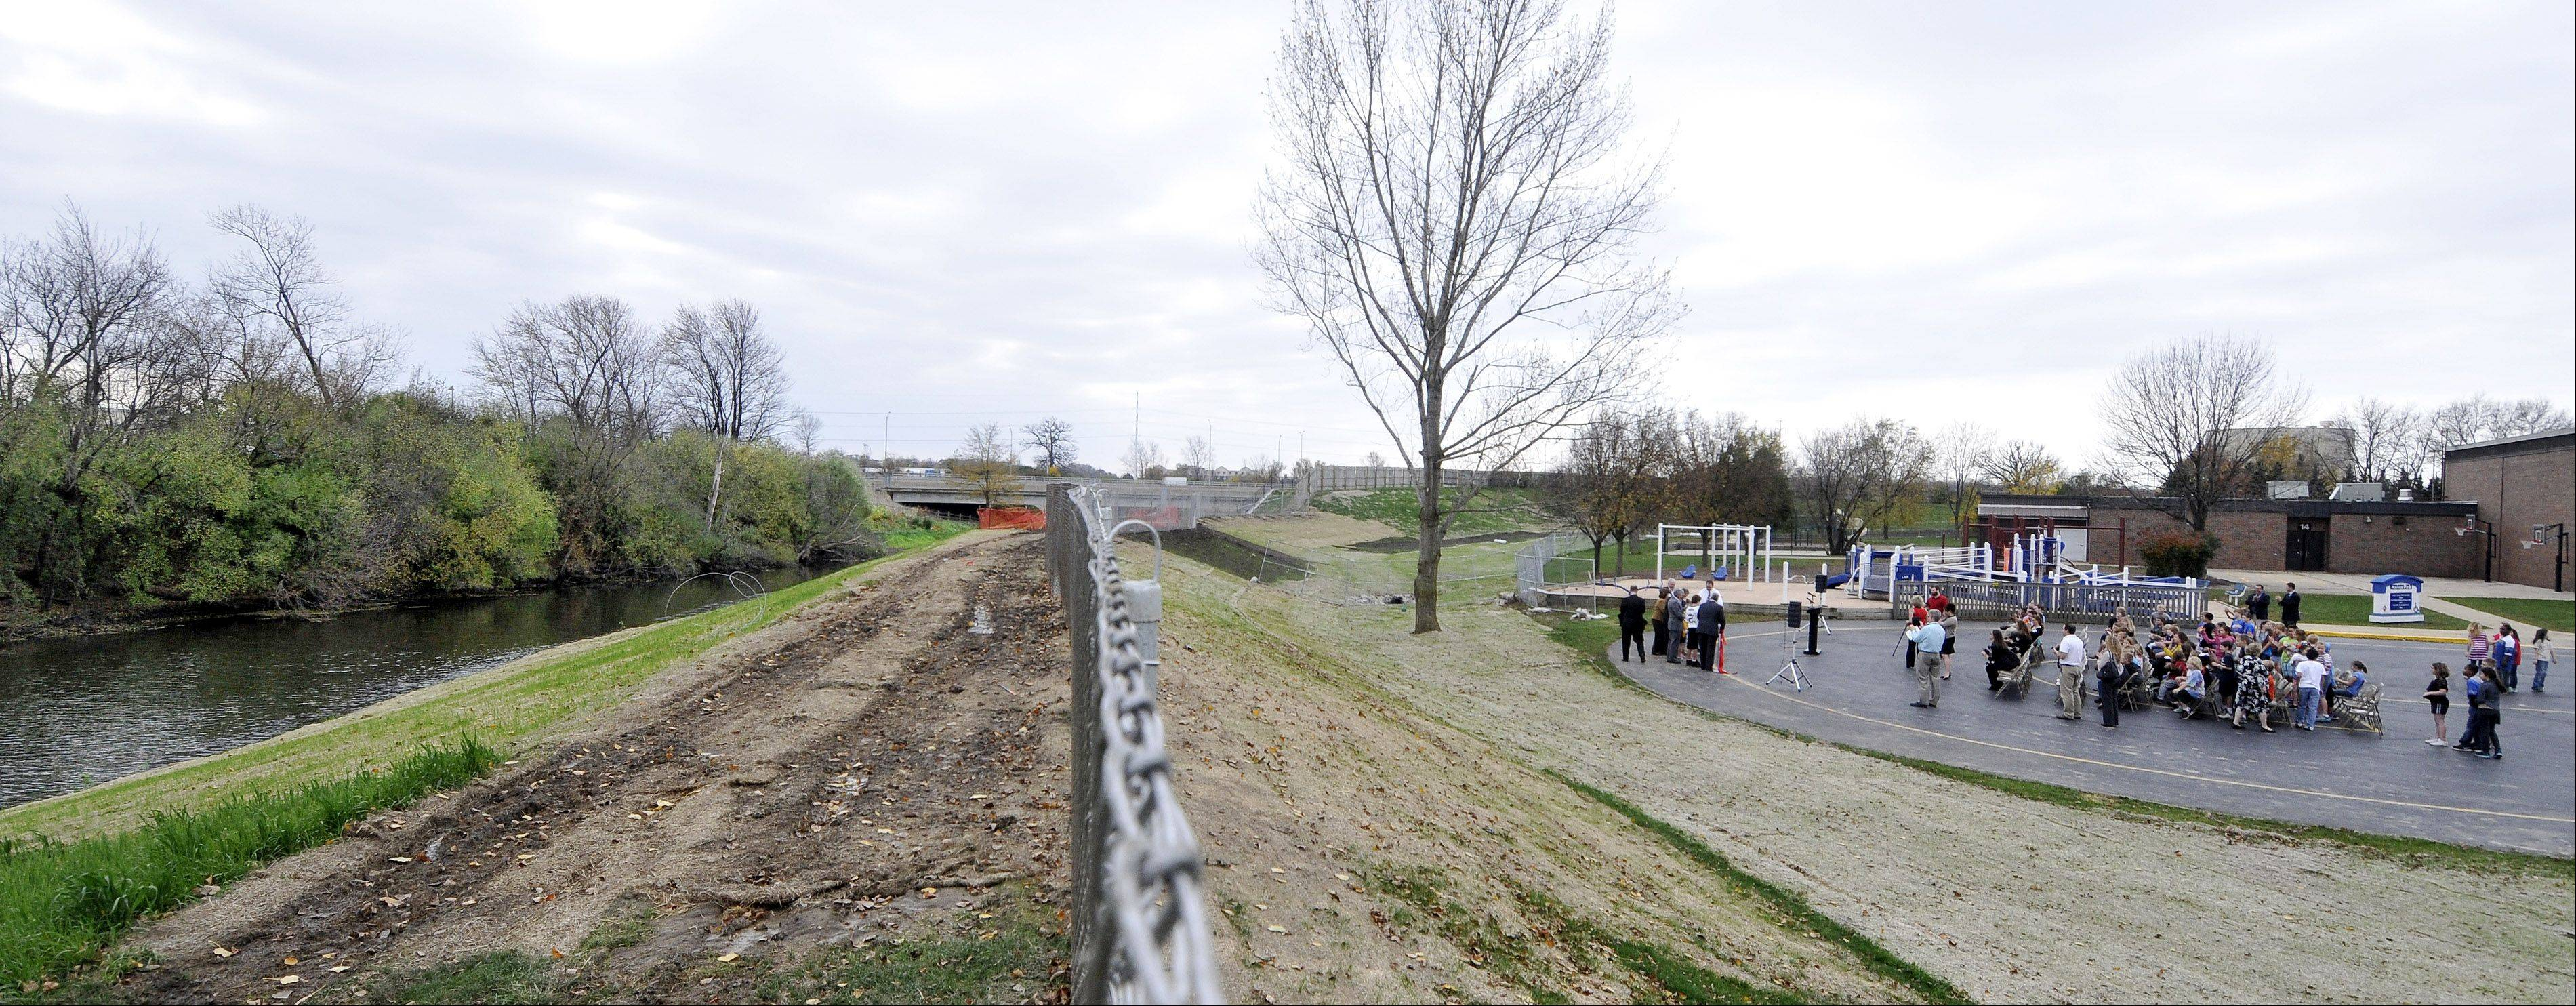 Bower Elementary School officials and students cut a ribbon in an area that flooded four years ago. To prevent future flooding, the school district and county worked together to build a new berm between the DuPage River and the Warrenville school.